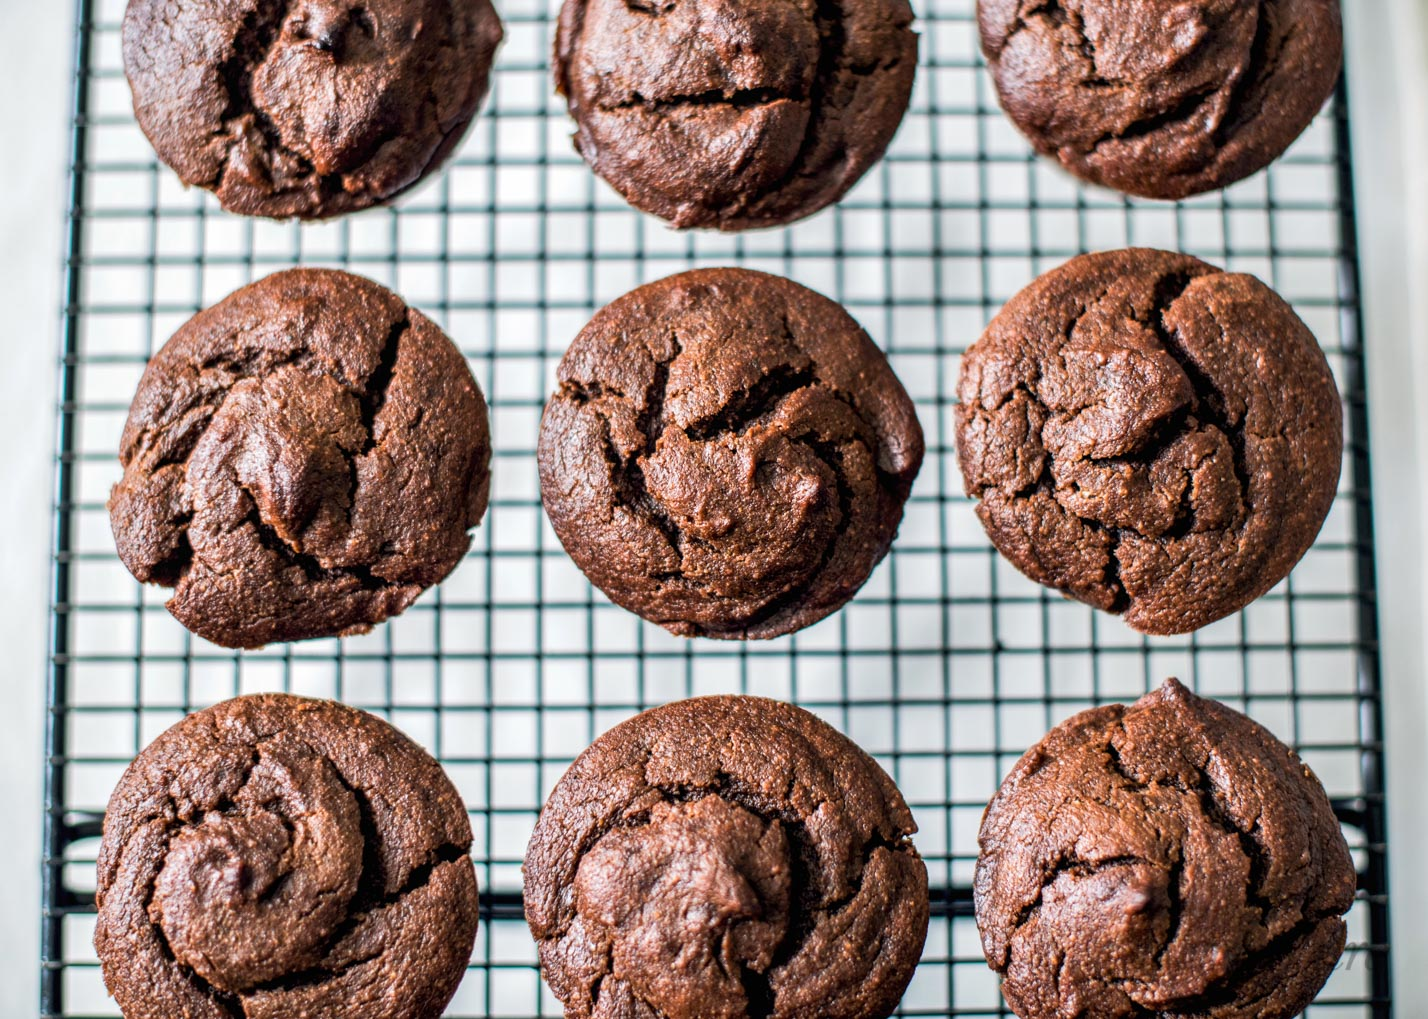 Chocolate Peanut Butter Muffins with summer squash. Gluten-free, dairy-free, sugar-free, low-carb, THM-S.